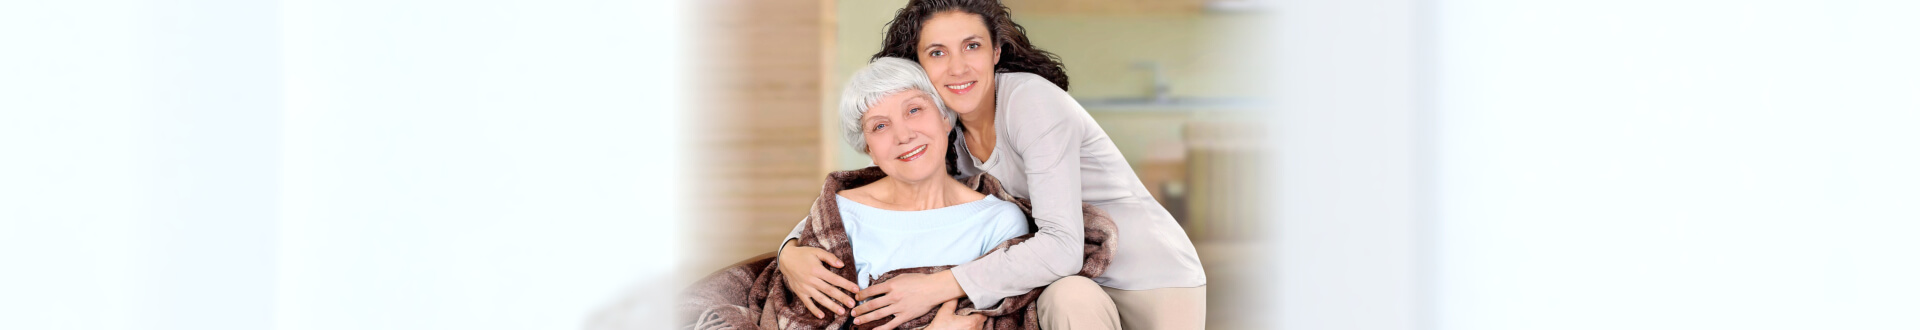 female caregiver hugging senior woman while sitting